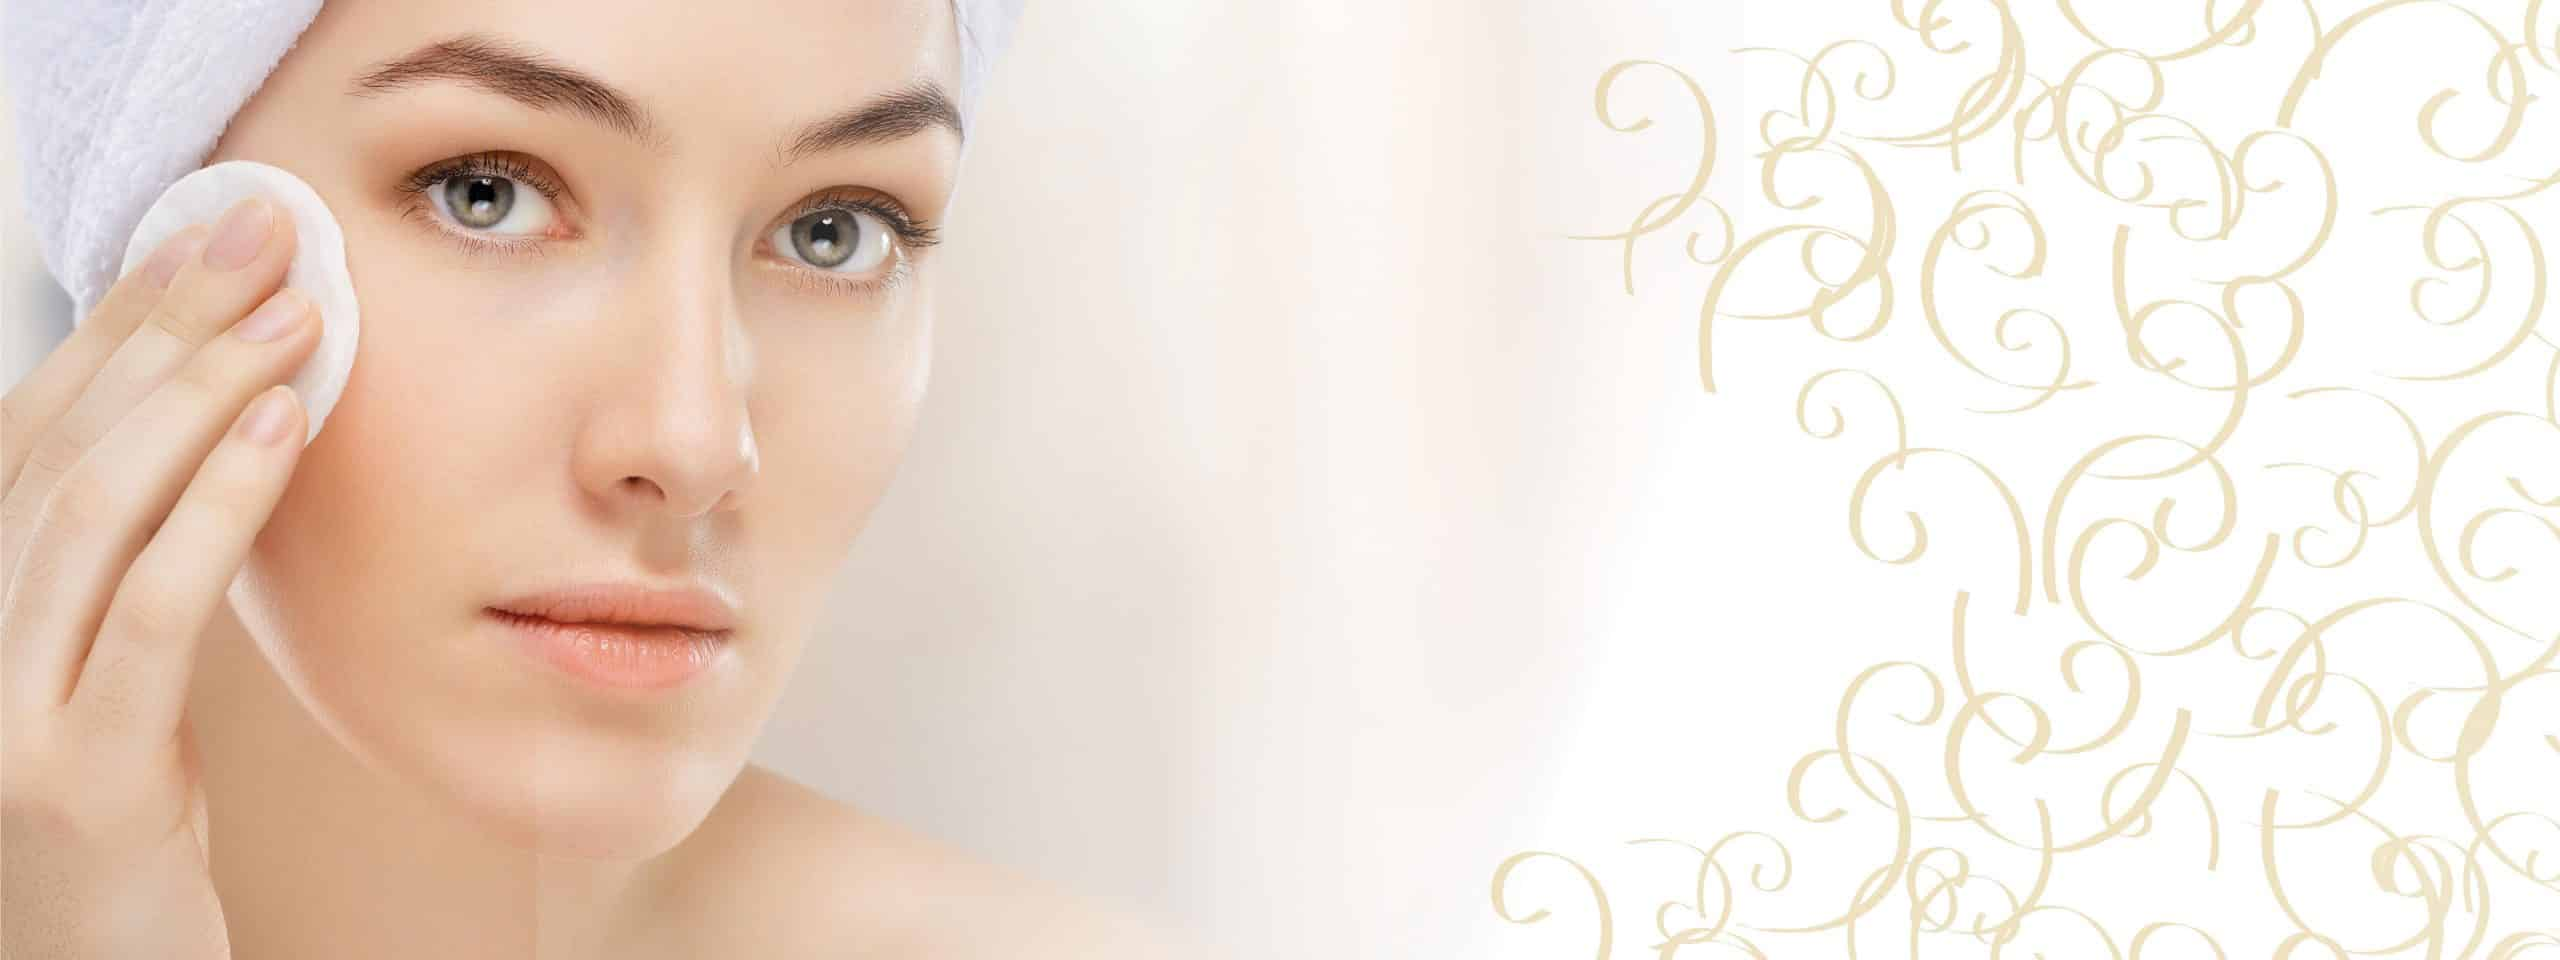 c884174e503 Skin Care • Bluegrass Medical Aesthetics, Georgetown KY & Maysville KY